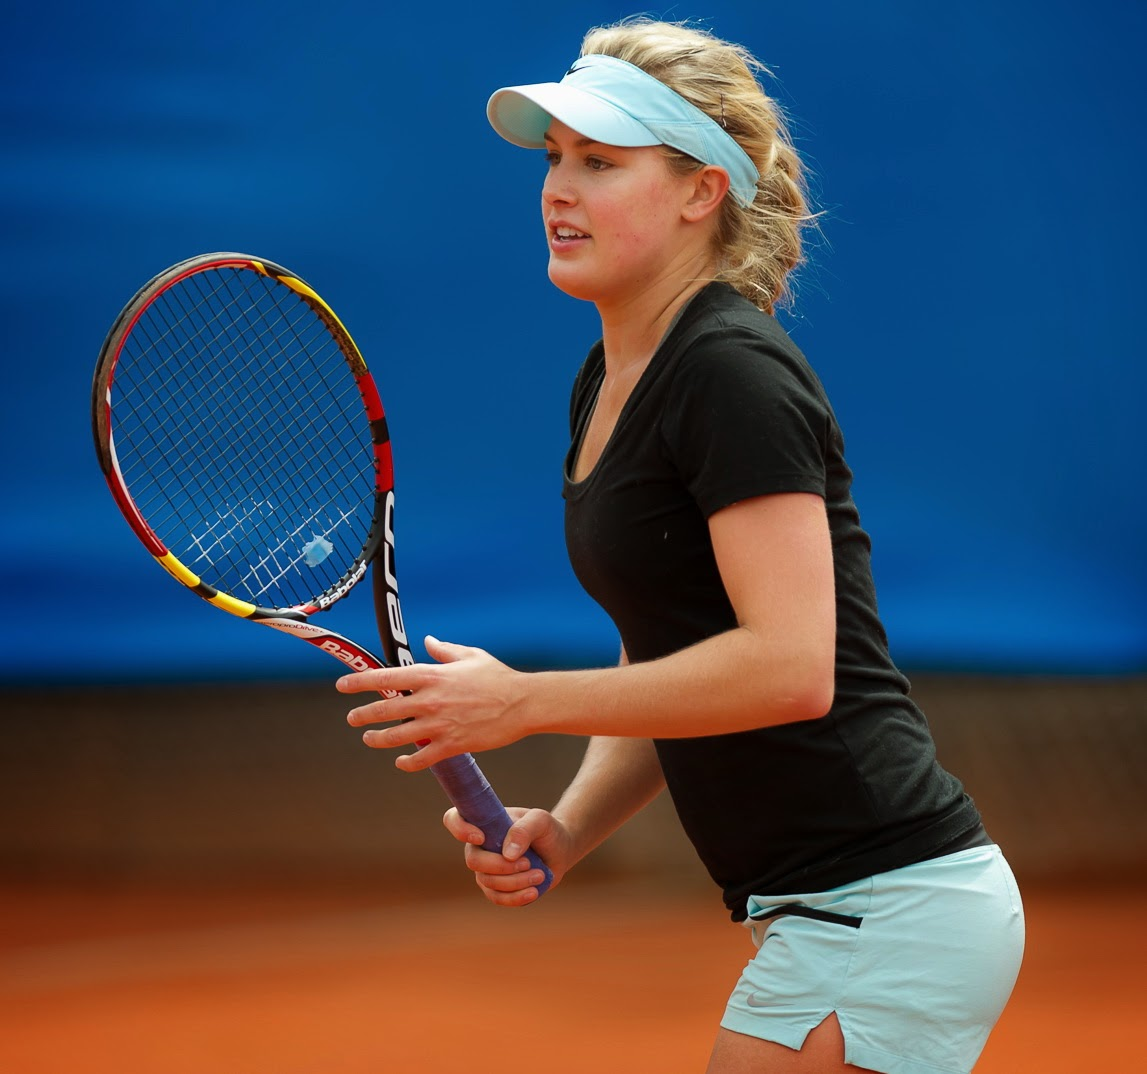 Eugenie Bouchard Brand New Hot Pictures 2014-15